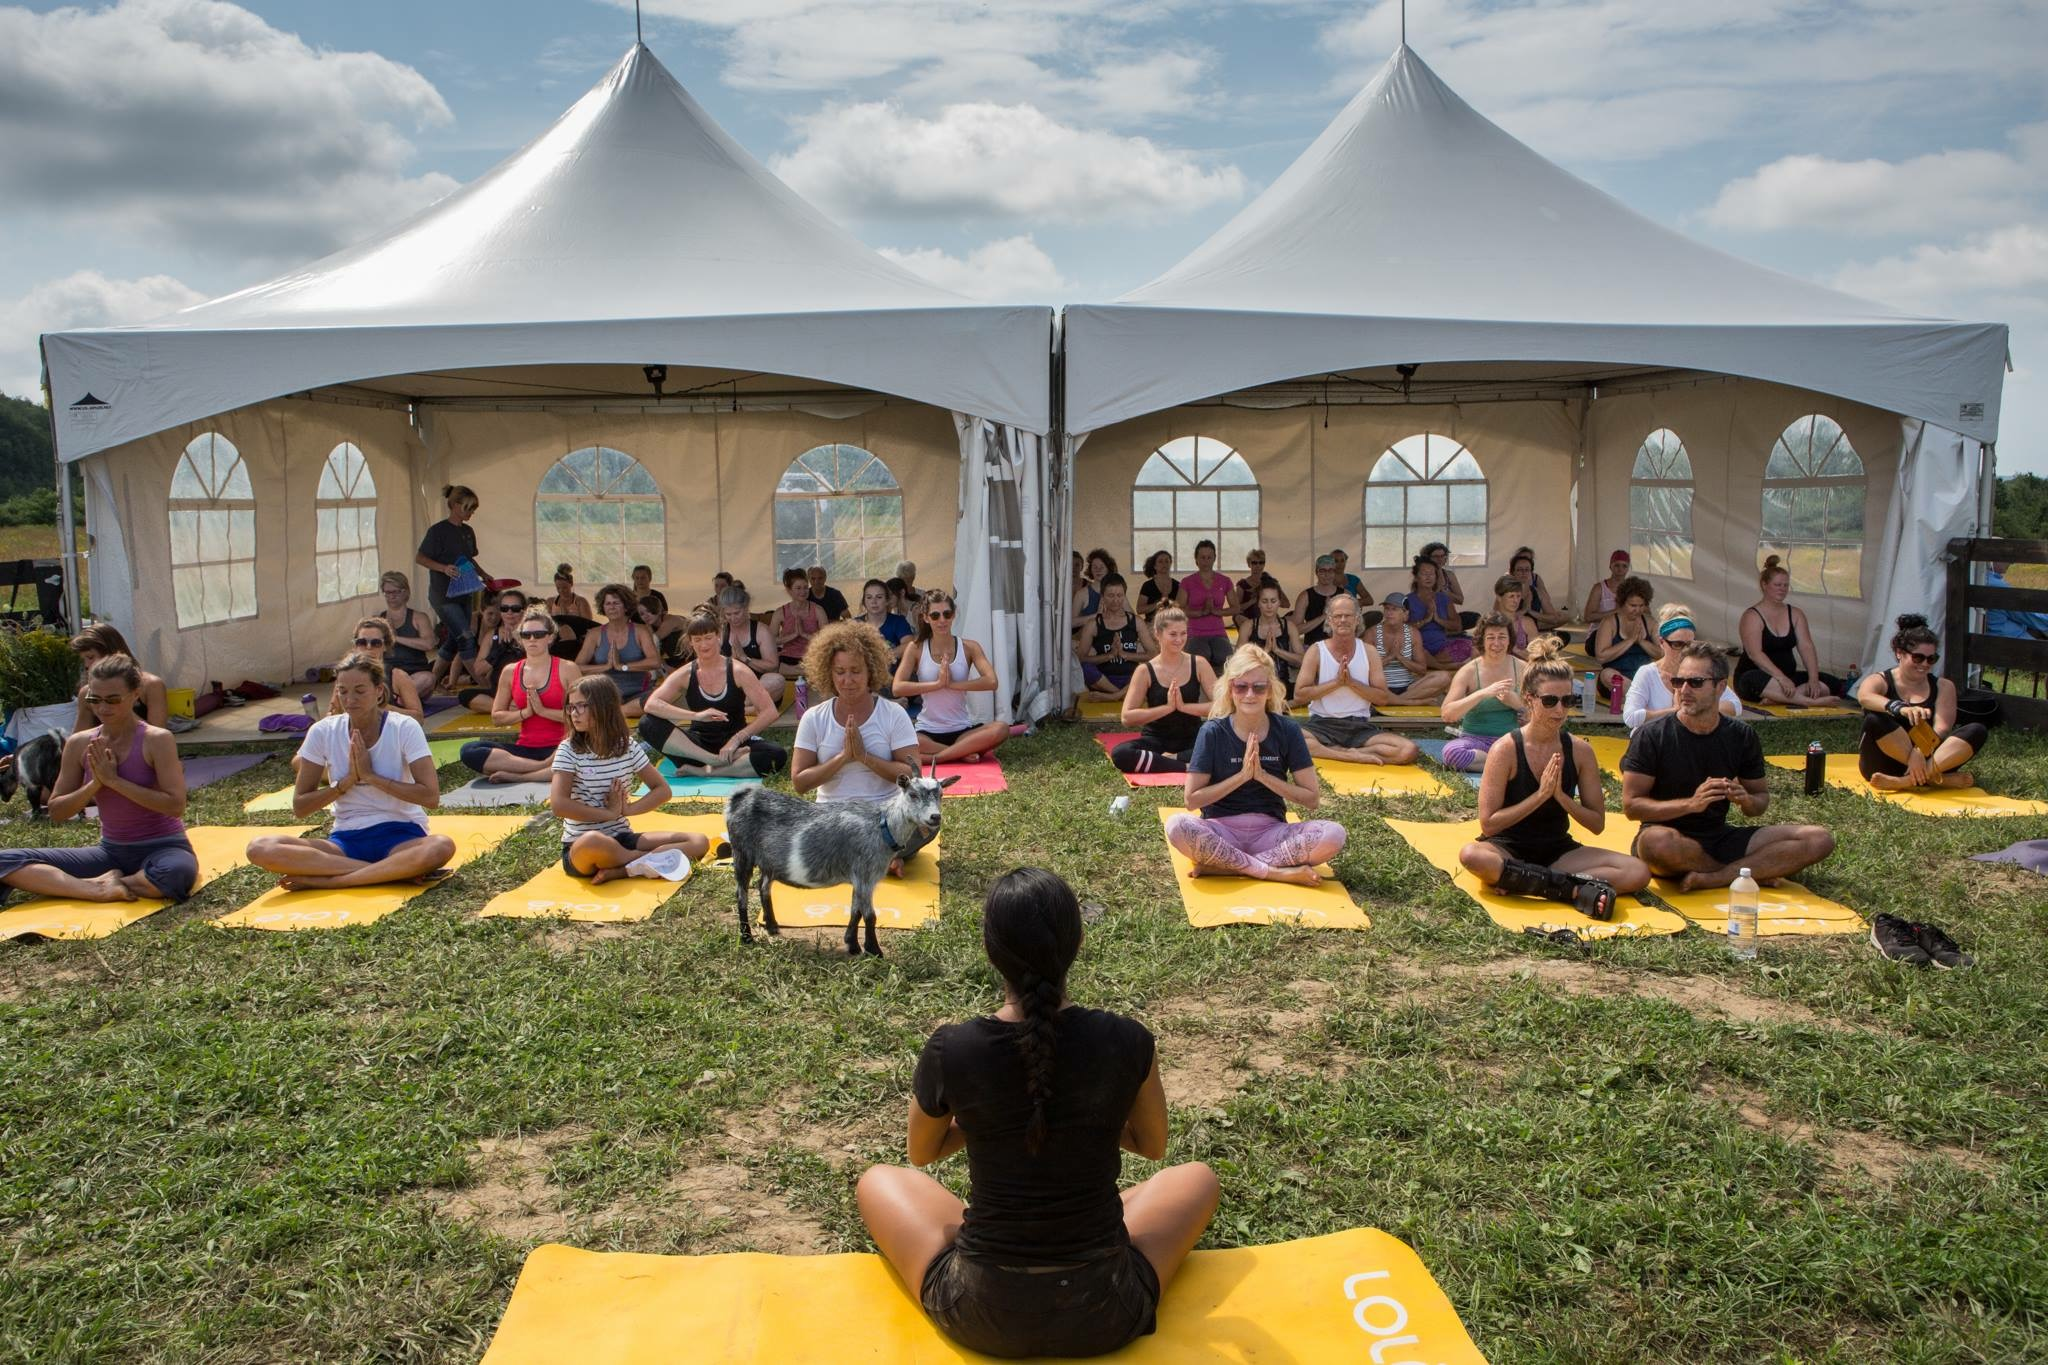 Free yoga, picnic on the grass, what more could you ask for?